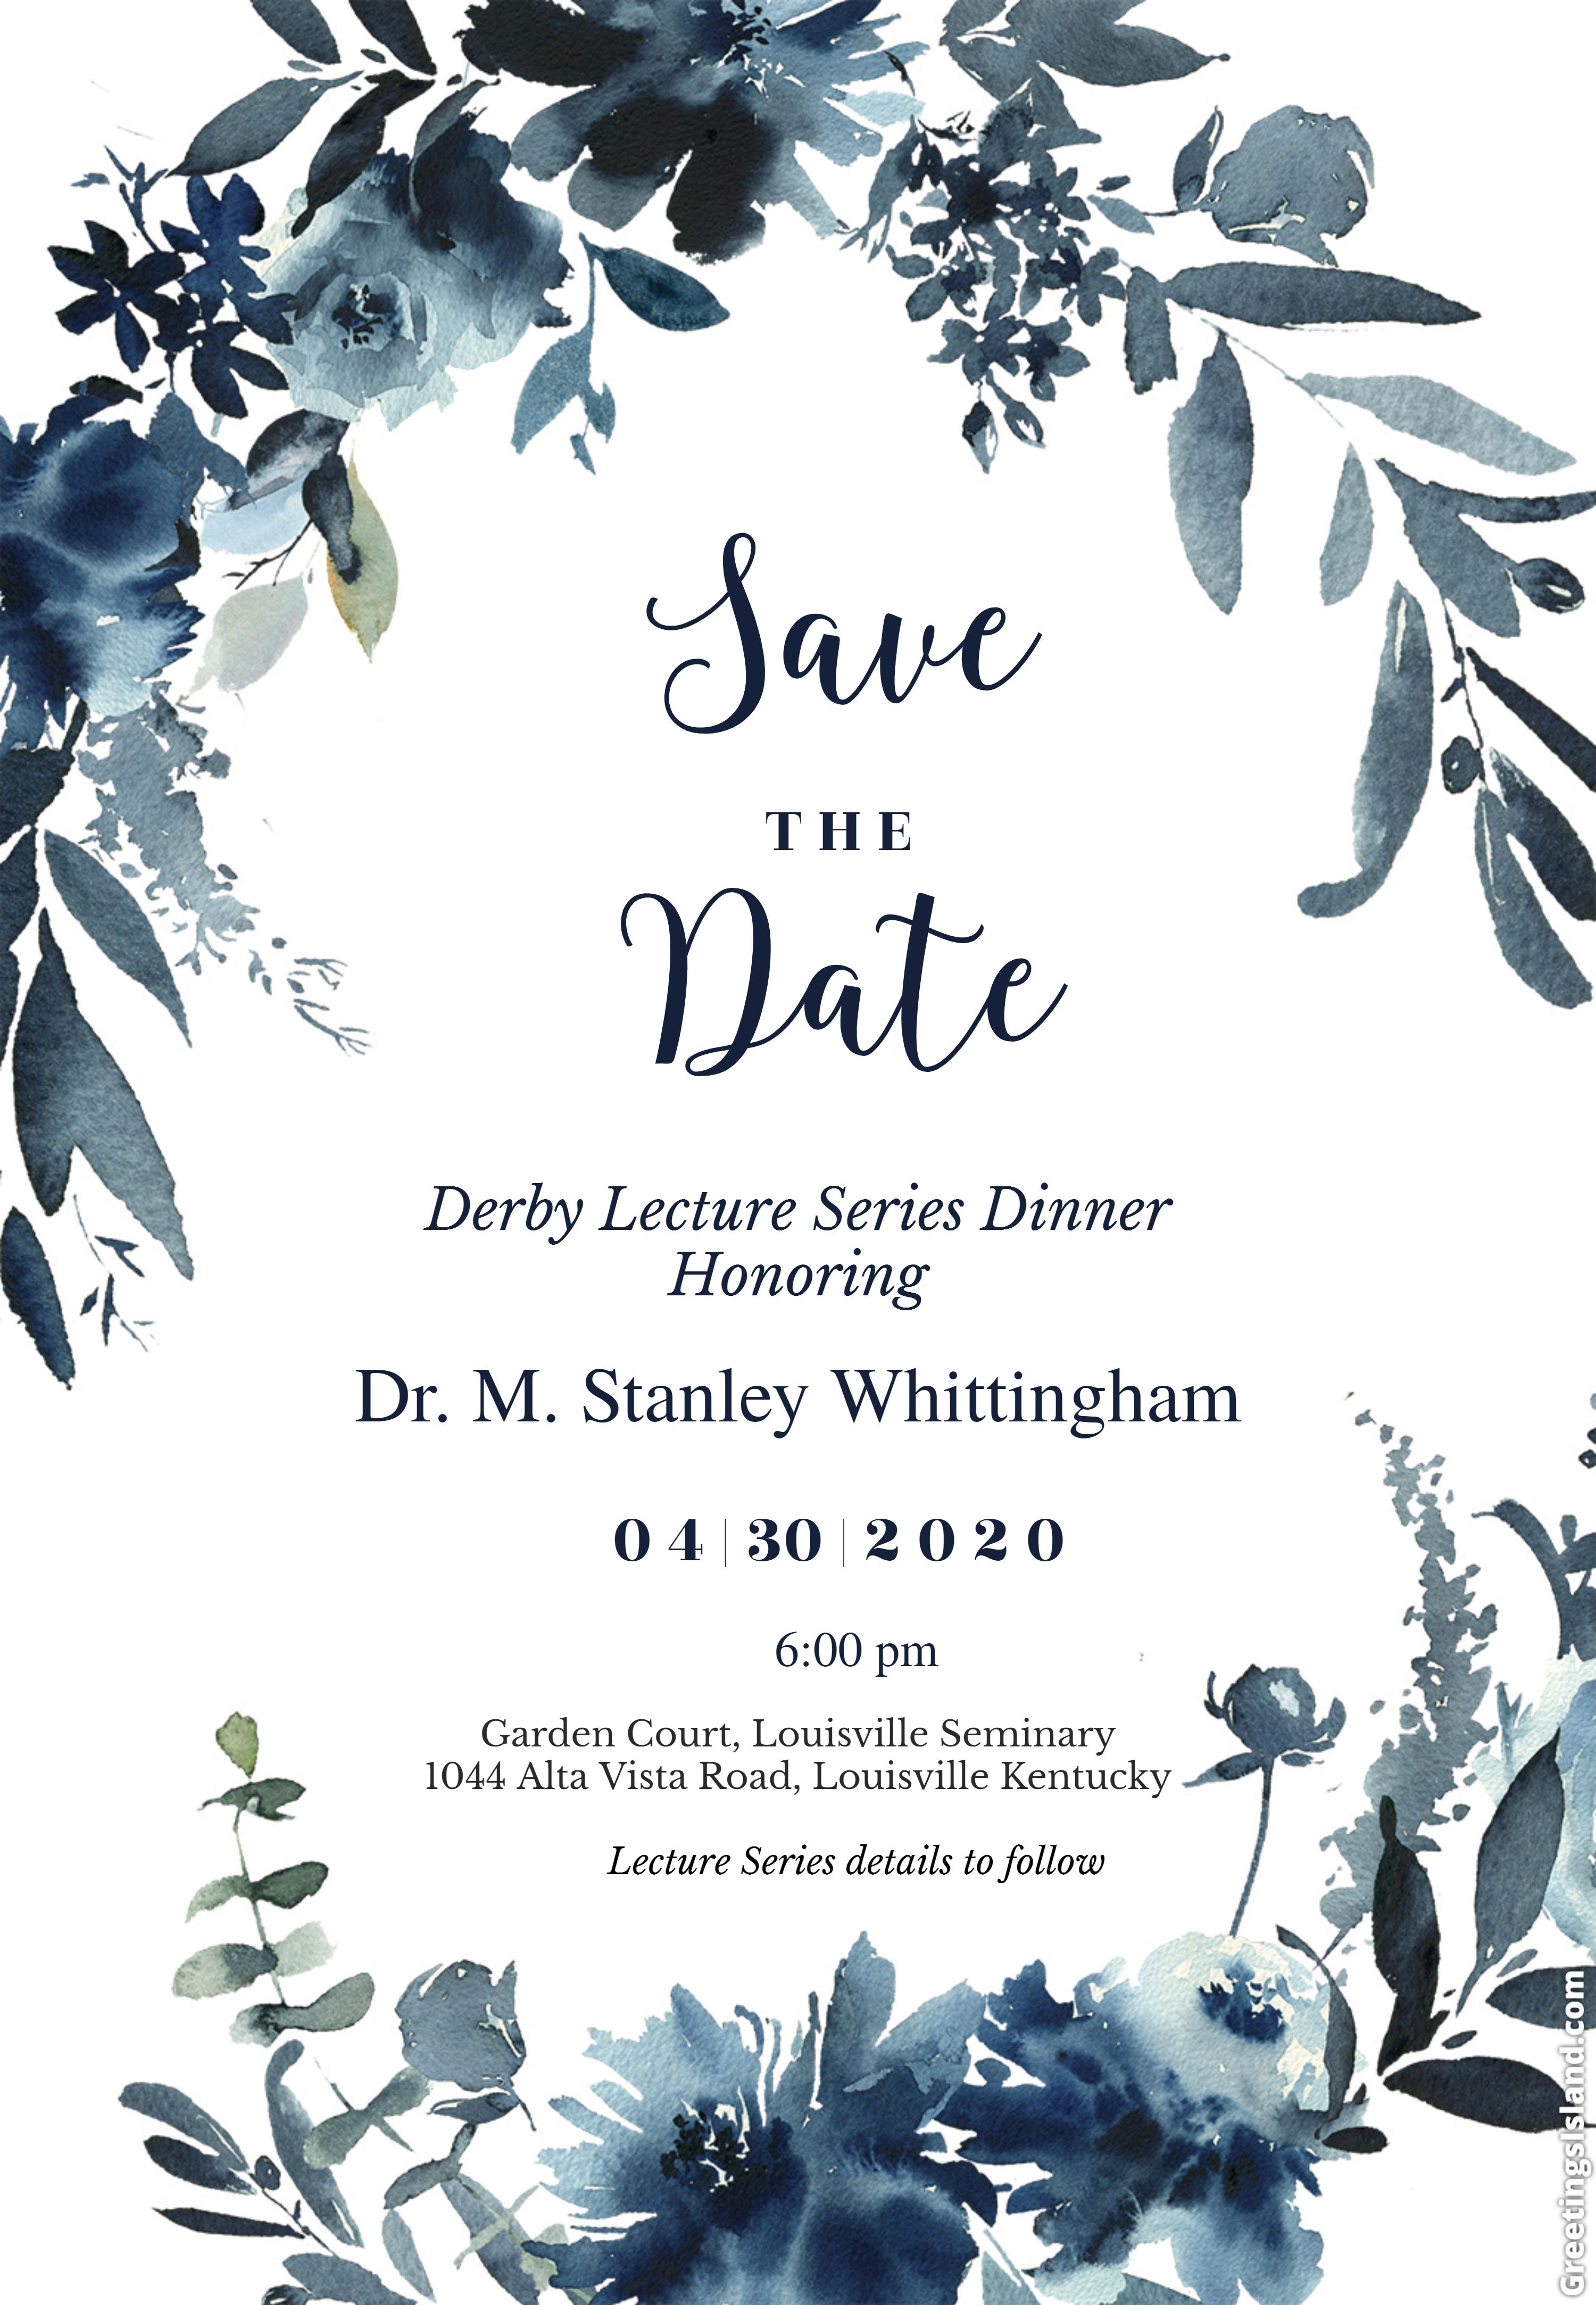 Derby Lecture Series Dinner